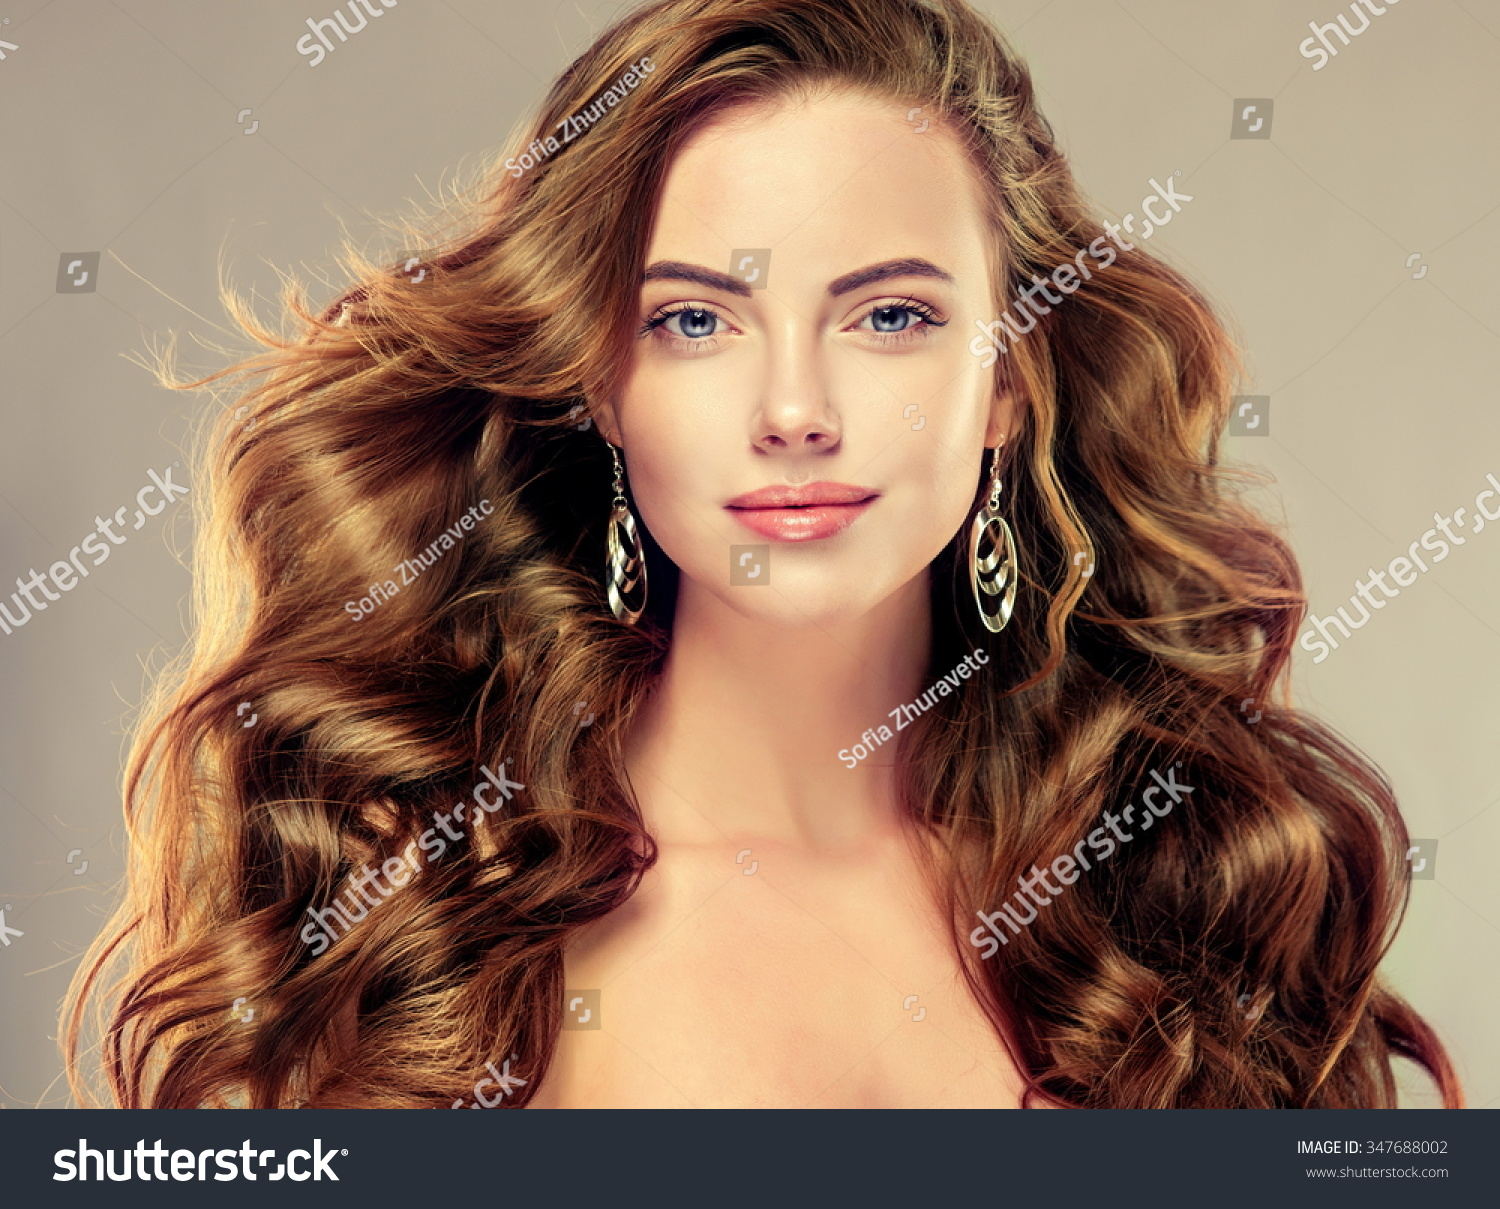 Remarkable Beautiful Girl With Long Wavy Hair Brunette With Curly Hairstyle Hairstyle Inspiration Daily Dogsangcom